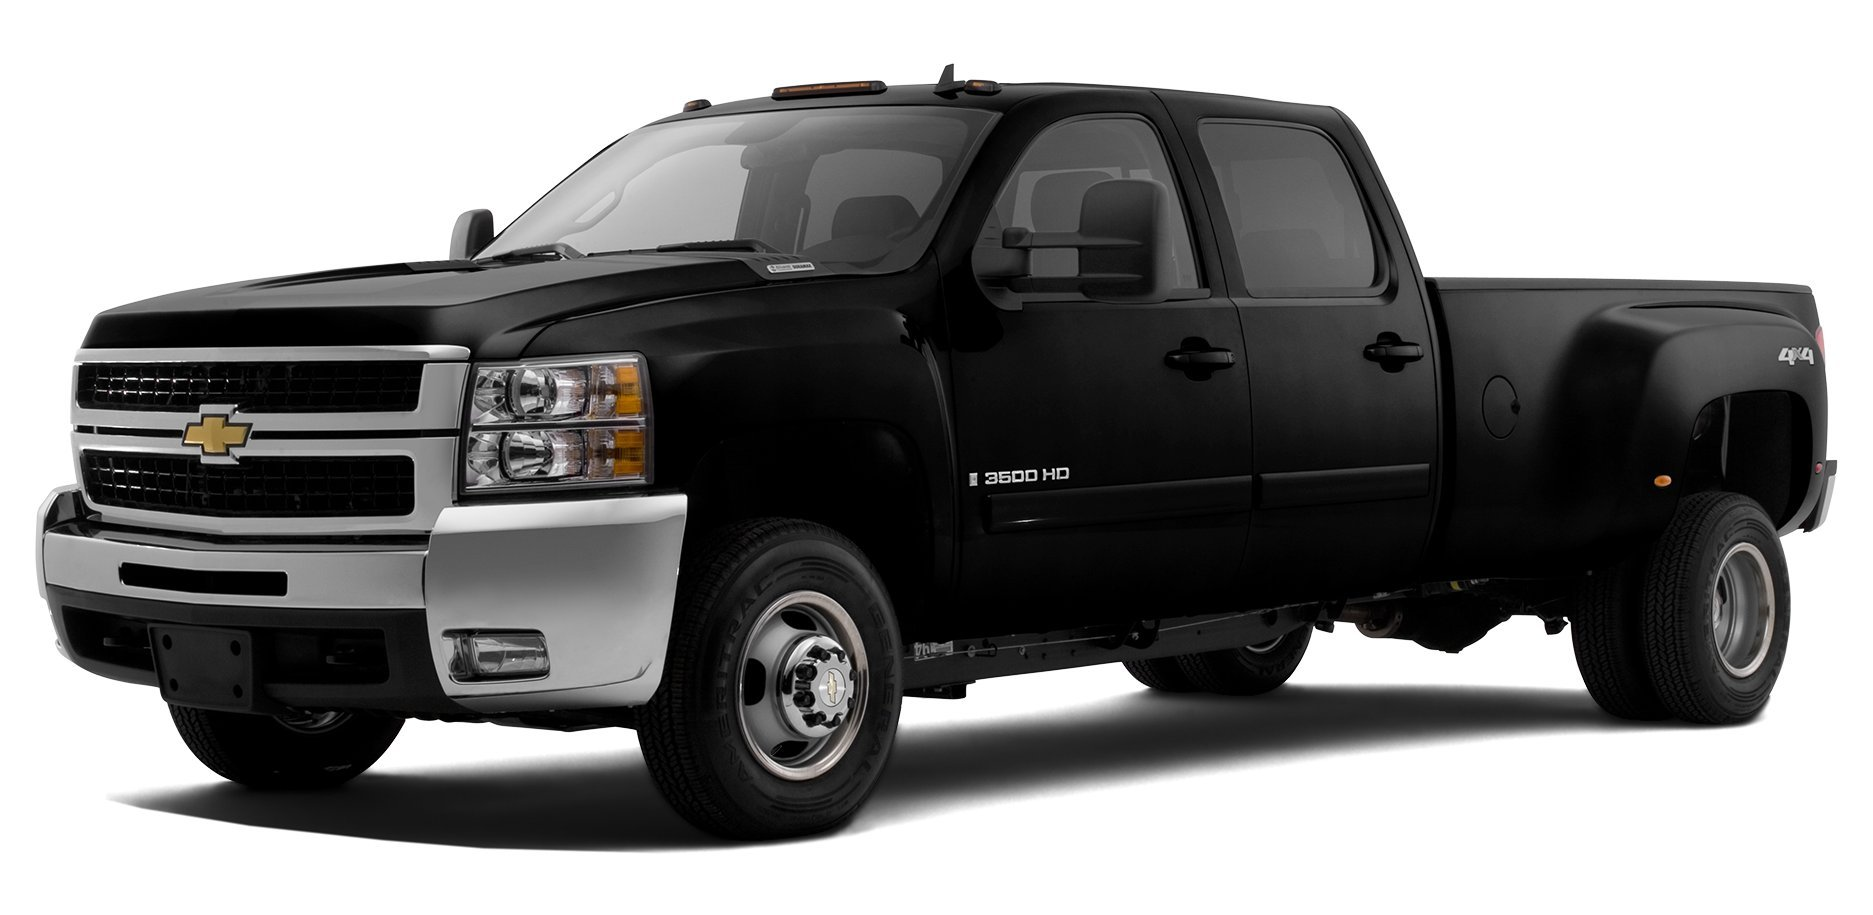 2007 chevrolet silverado 2500 hd reviews images and specs vehicles. Black Bedroom Furniture Sets. Home Design Ideas